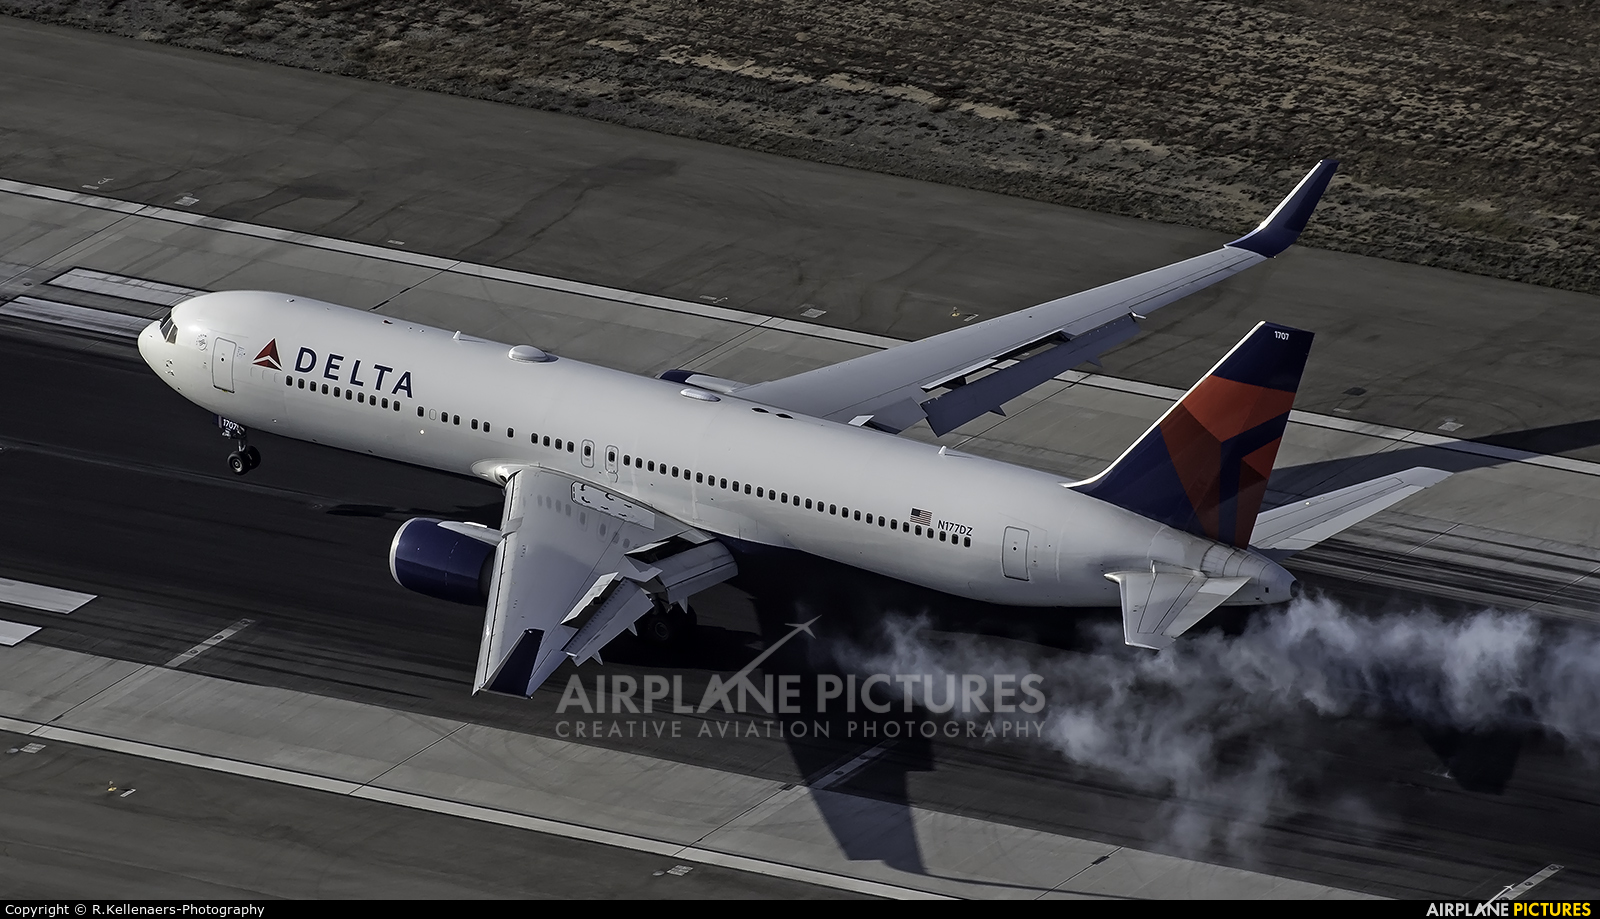 Delta Air Lines N177DZ aircraft at Los Angeles Intl